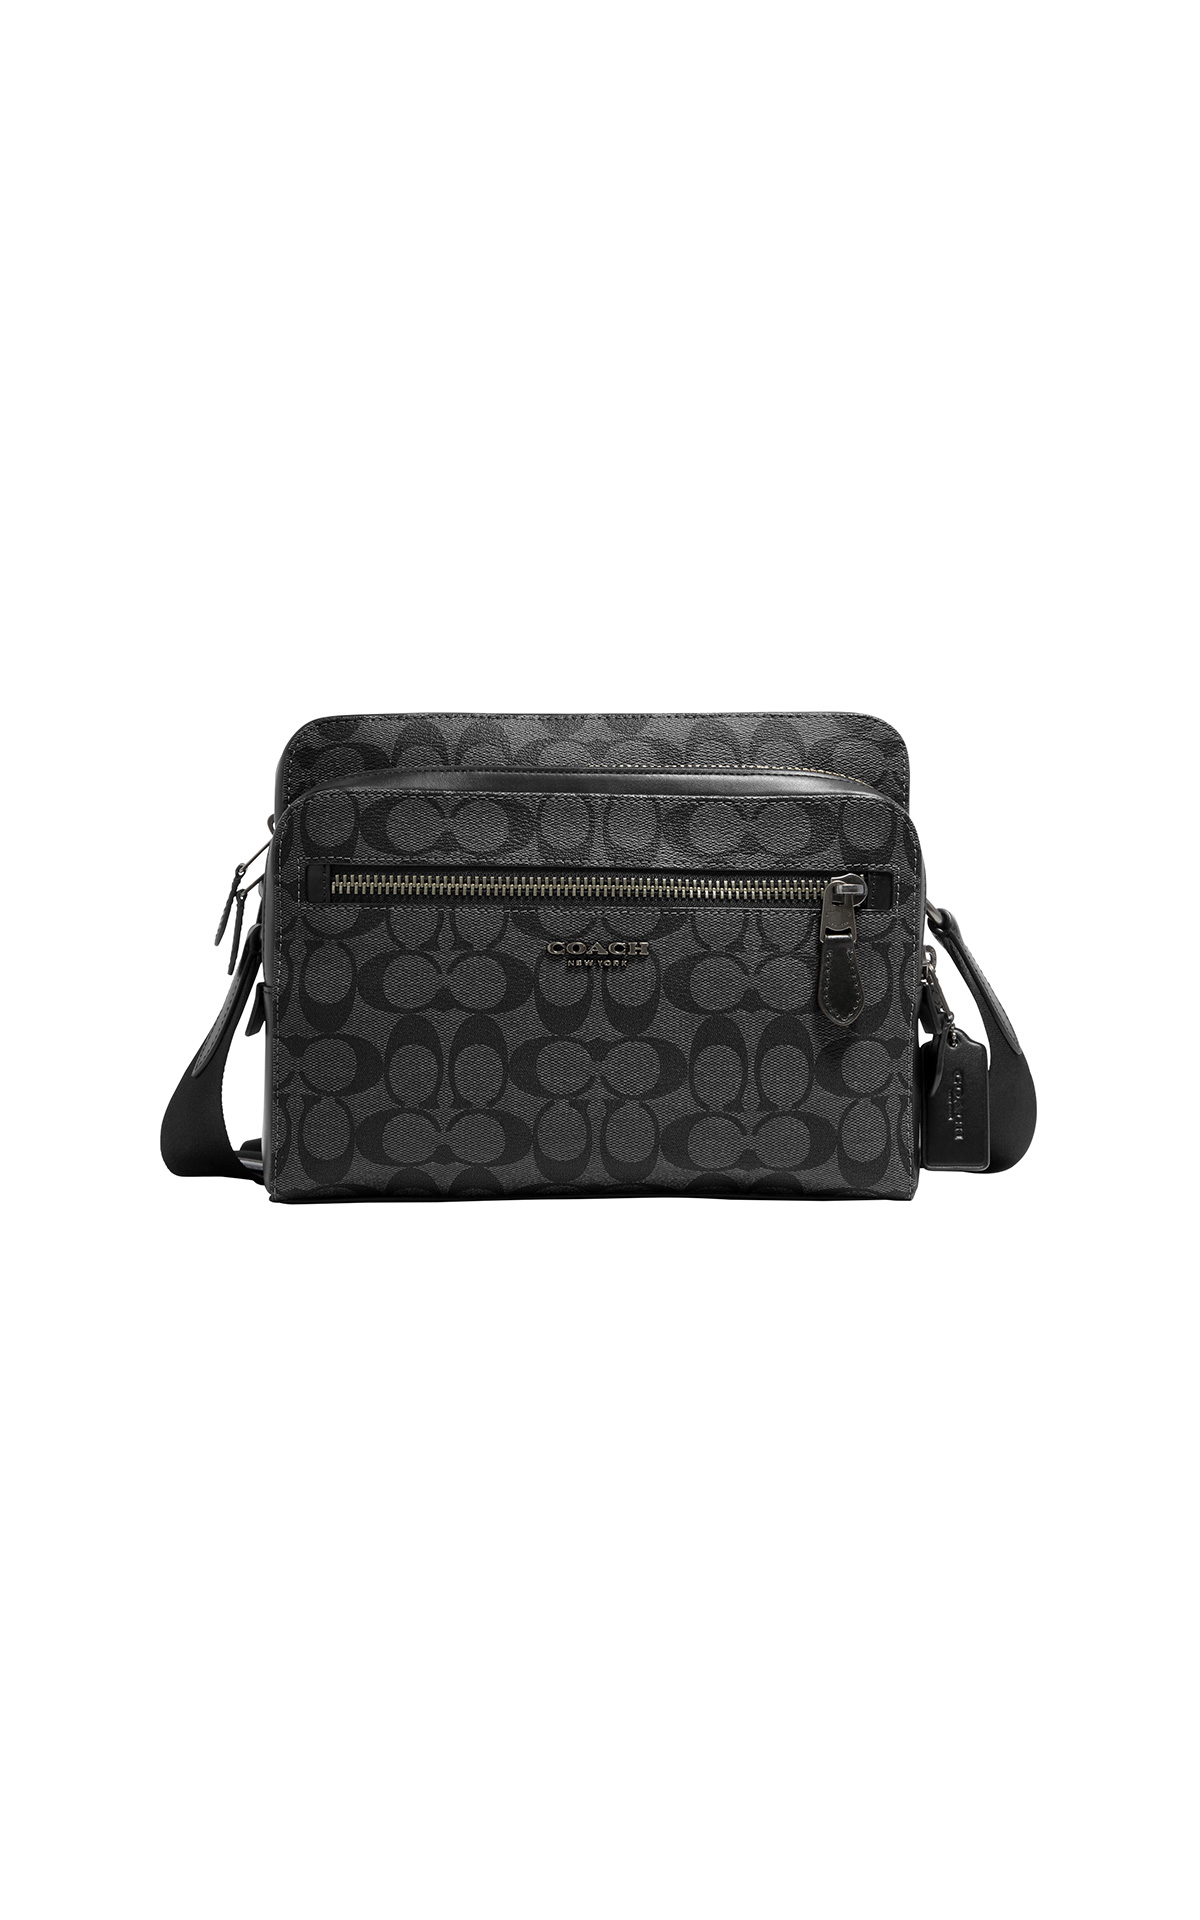 Coach Men's West Camera Bag in Signature at The Bicester Village Shopping Collection